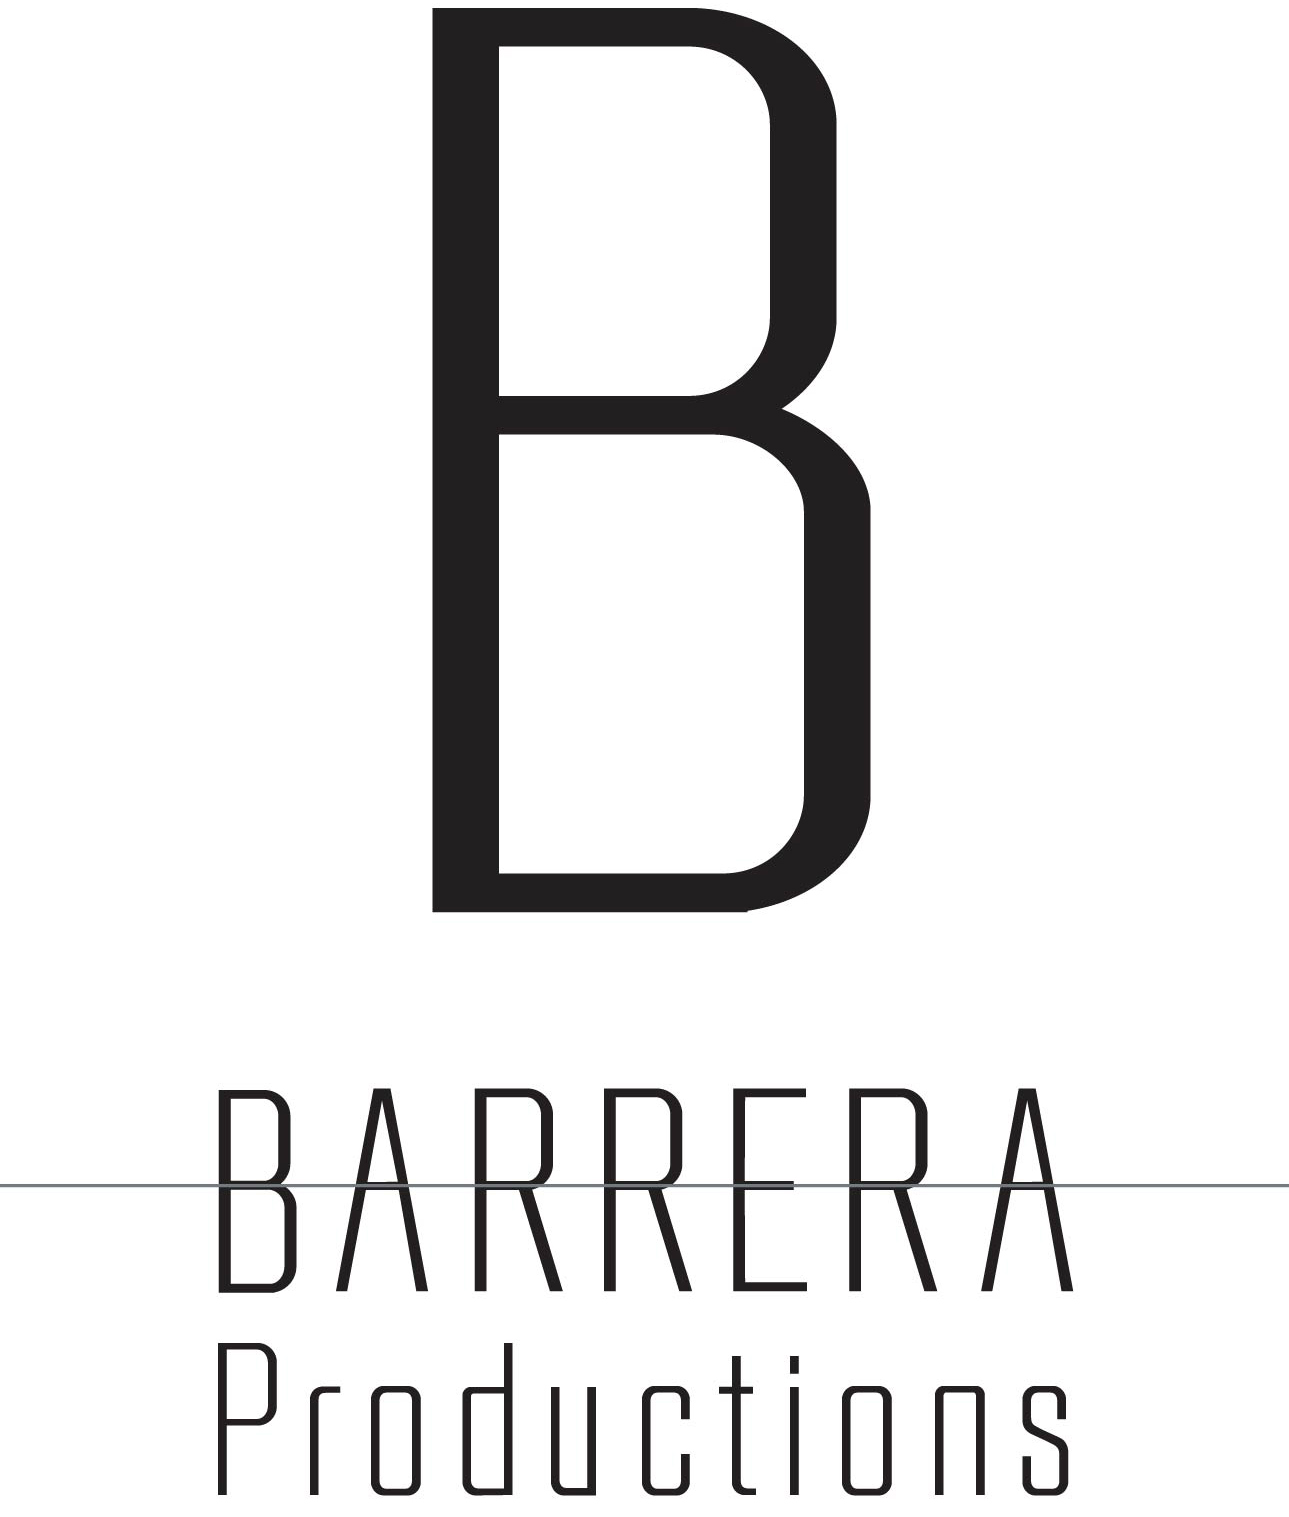 Barrera Productions